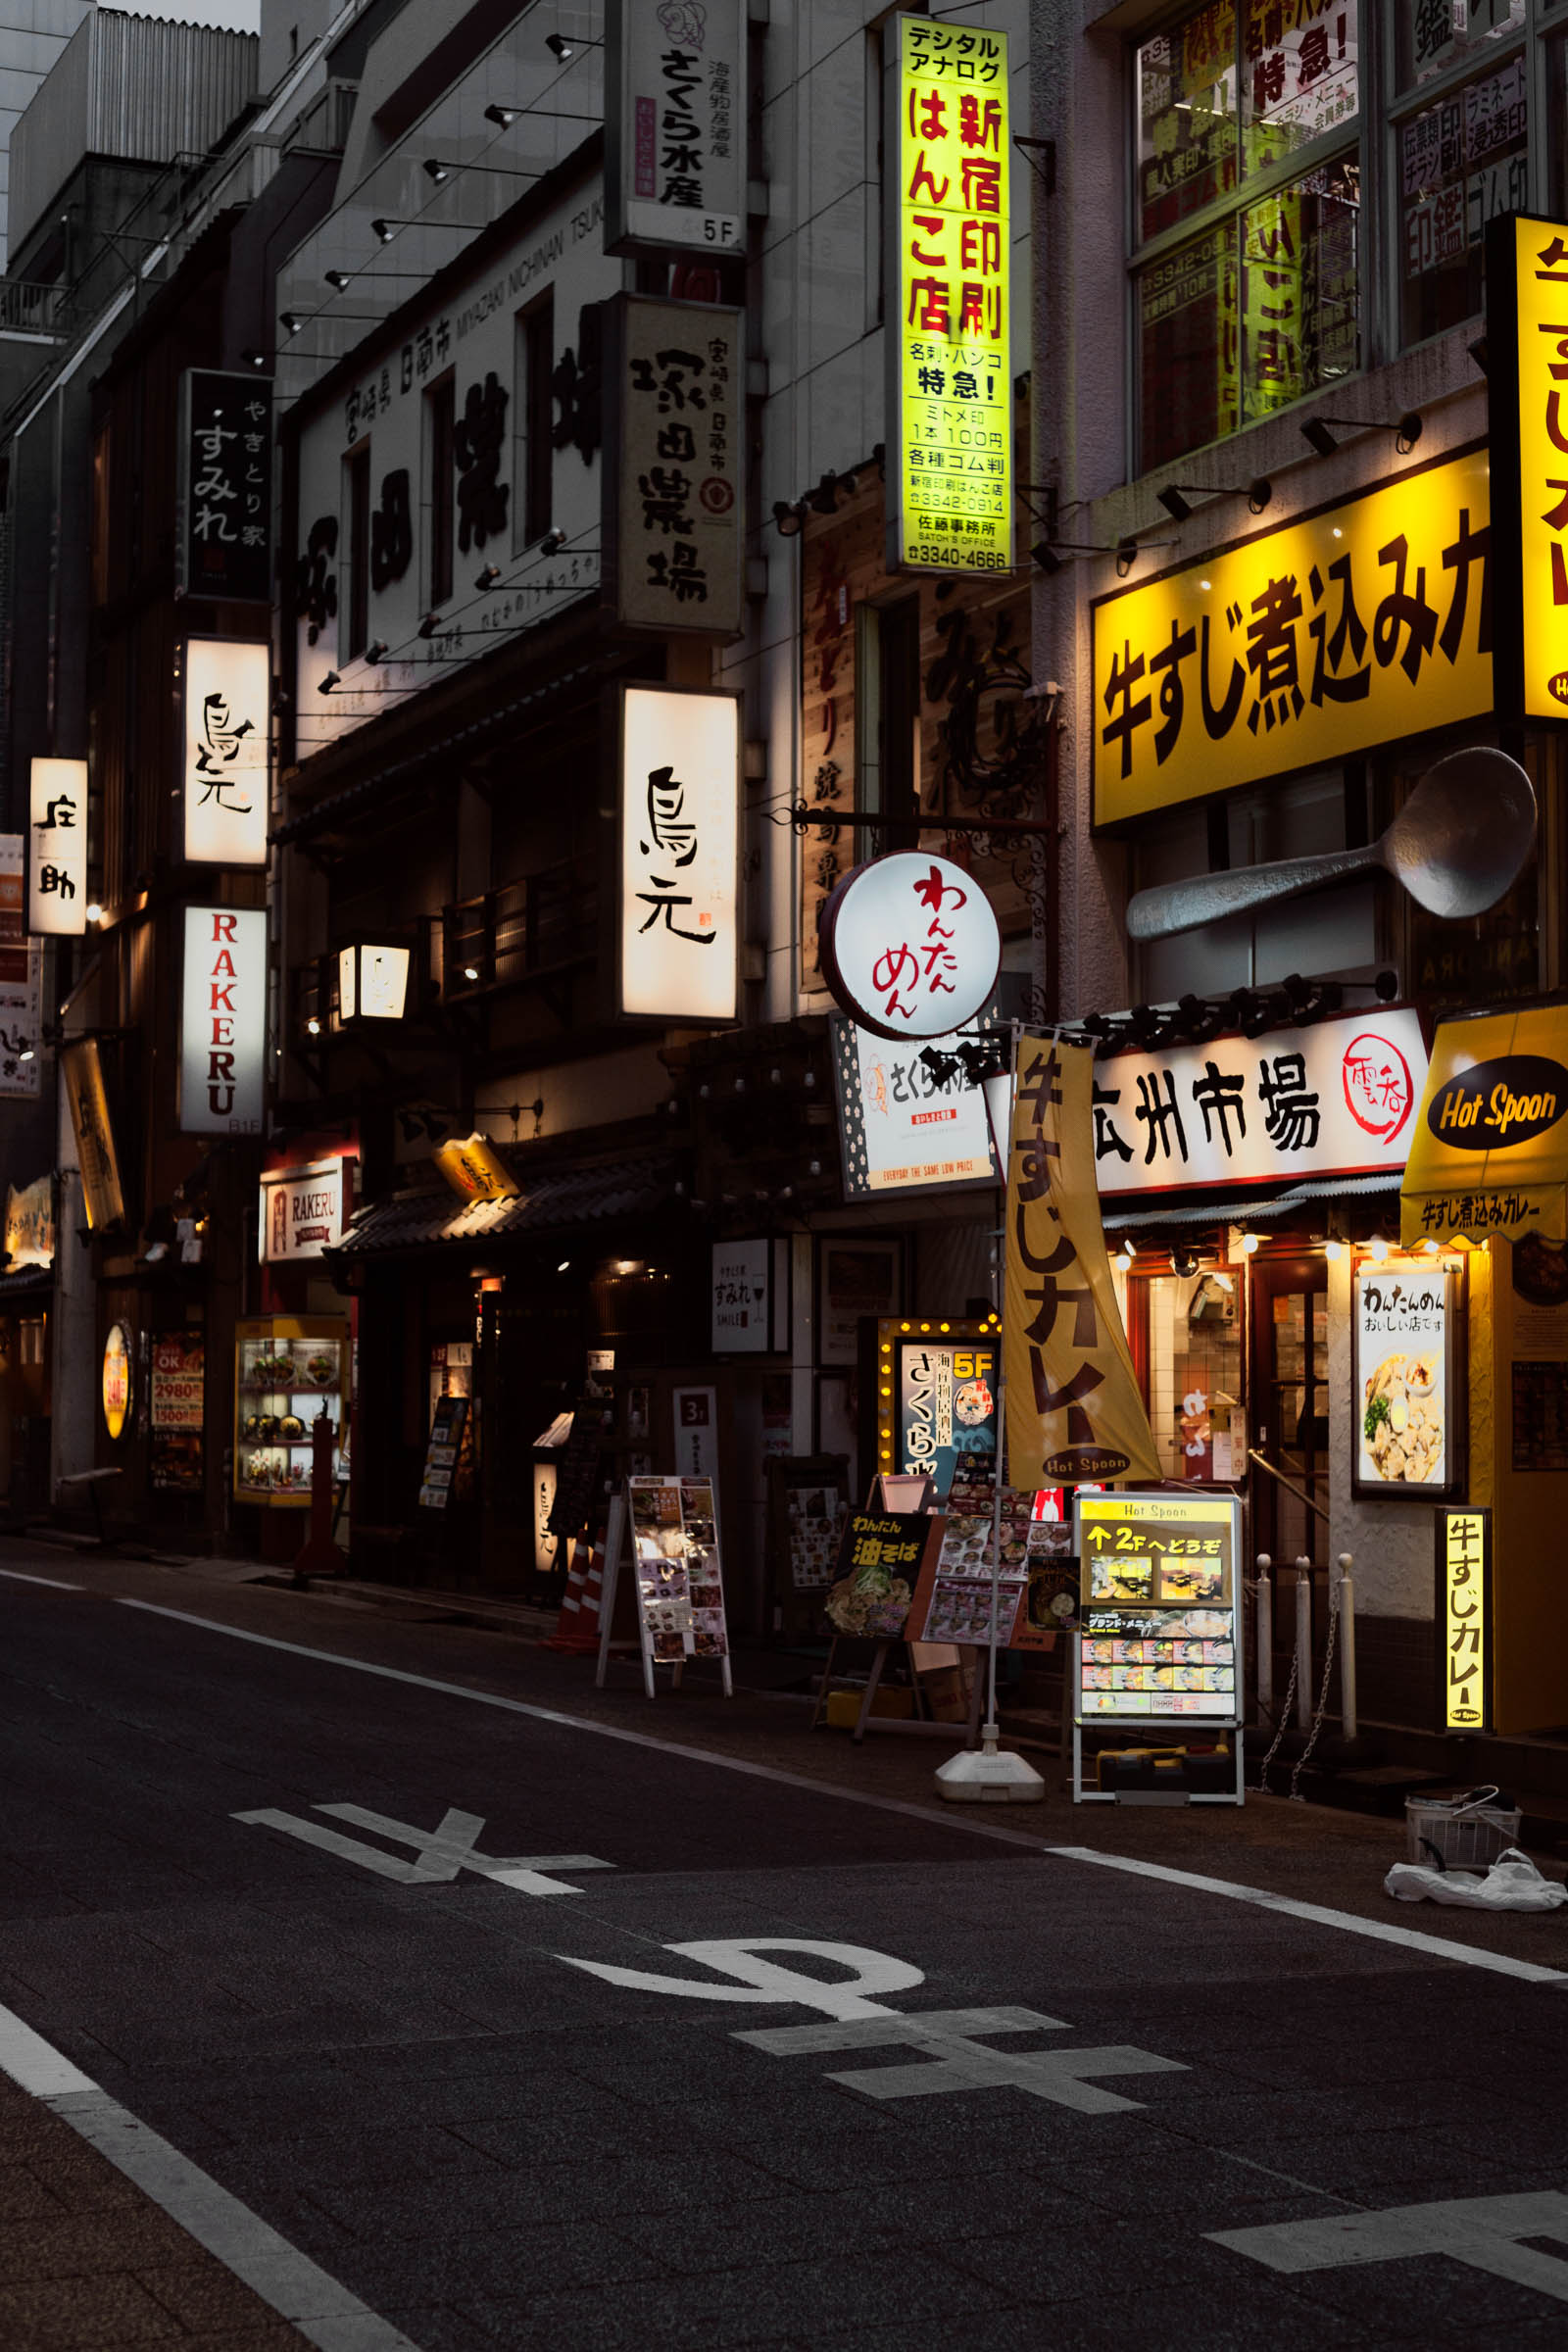 Chacon Images_Japan_Web-132.jpg